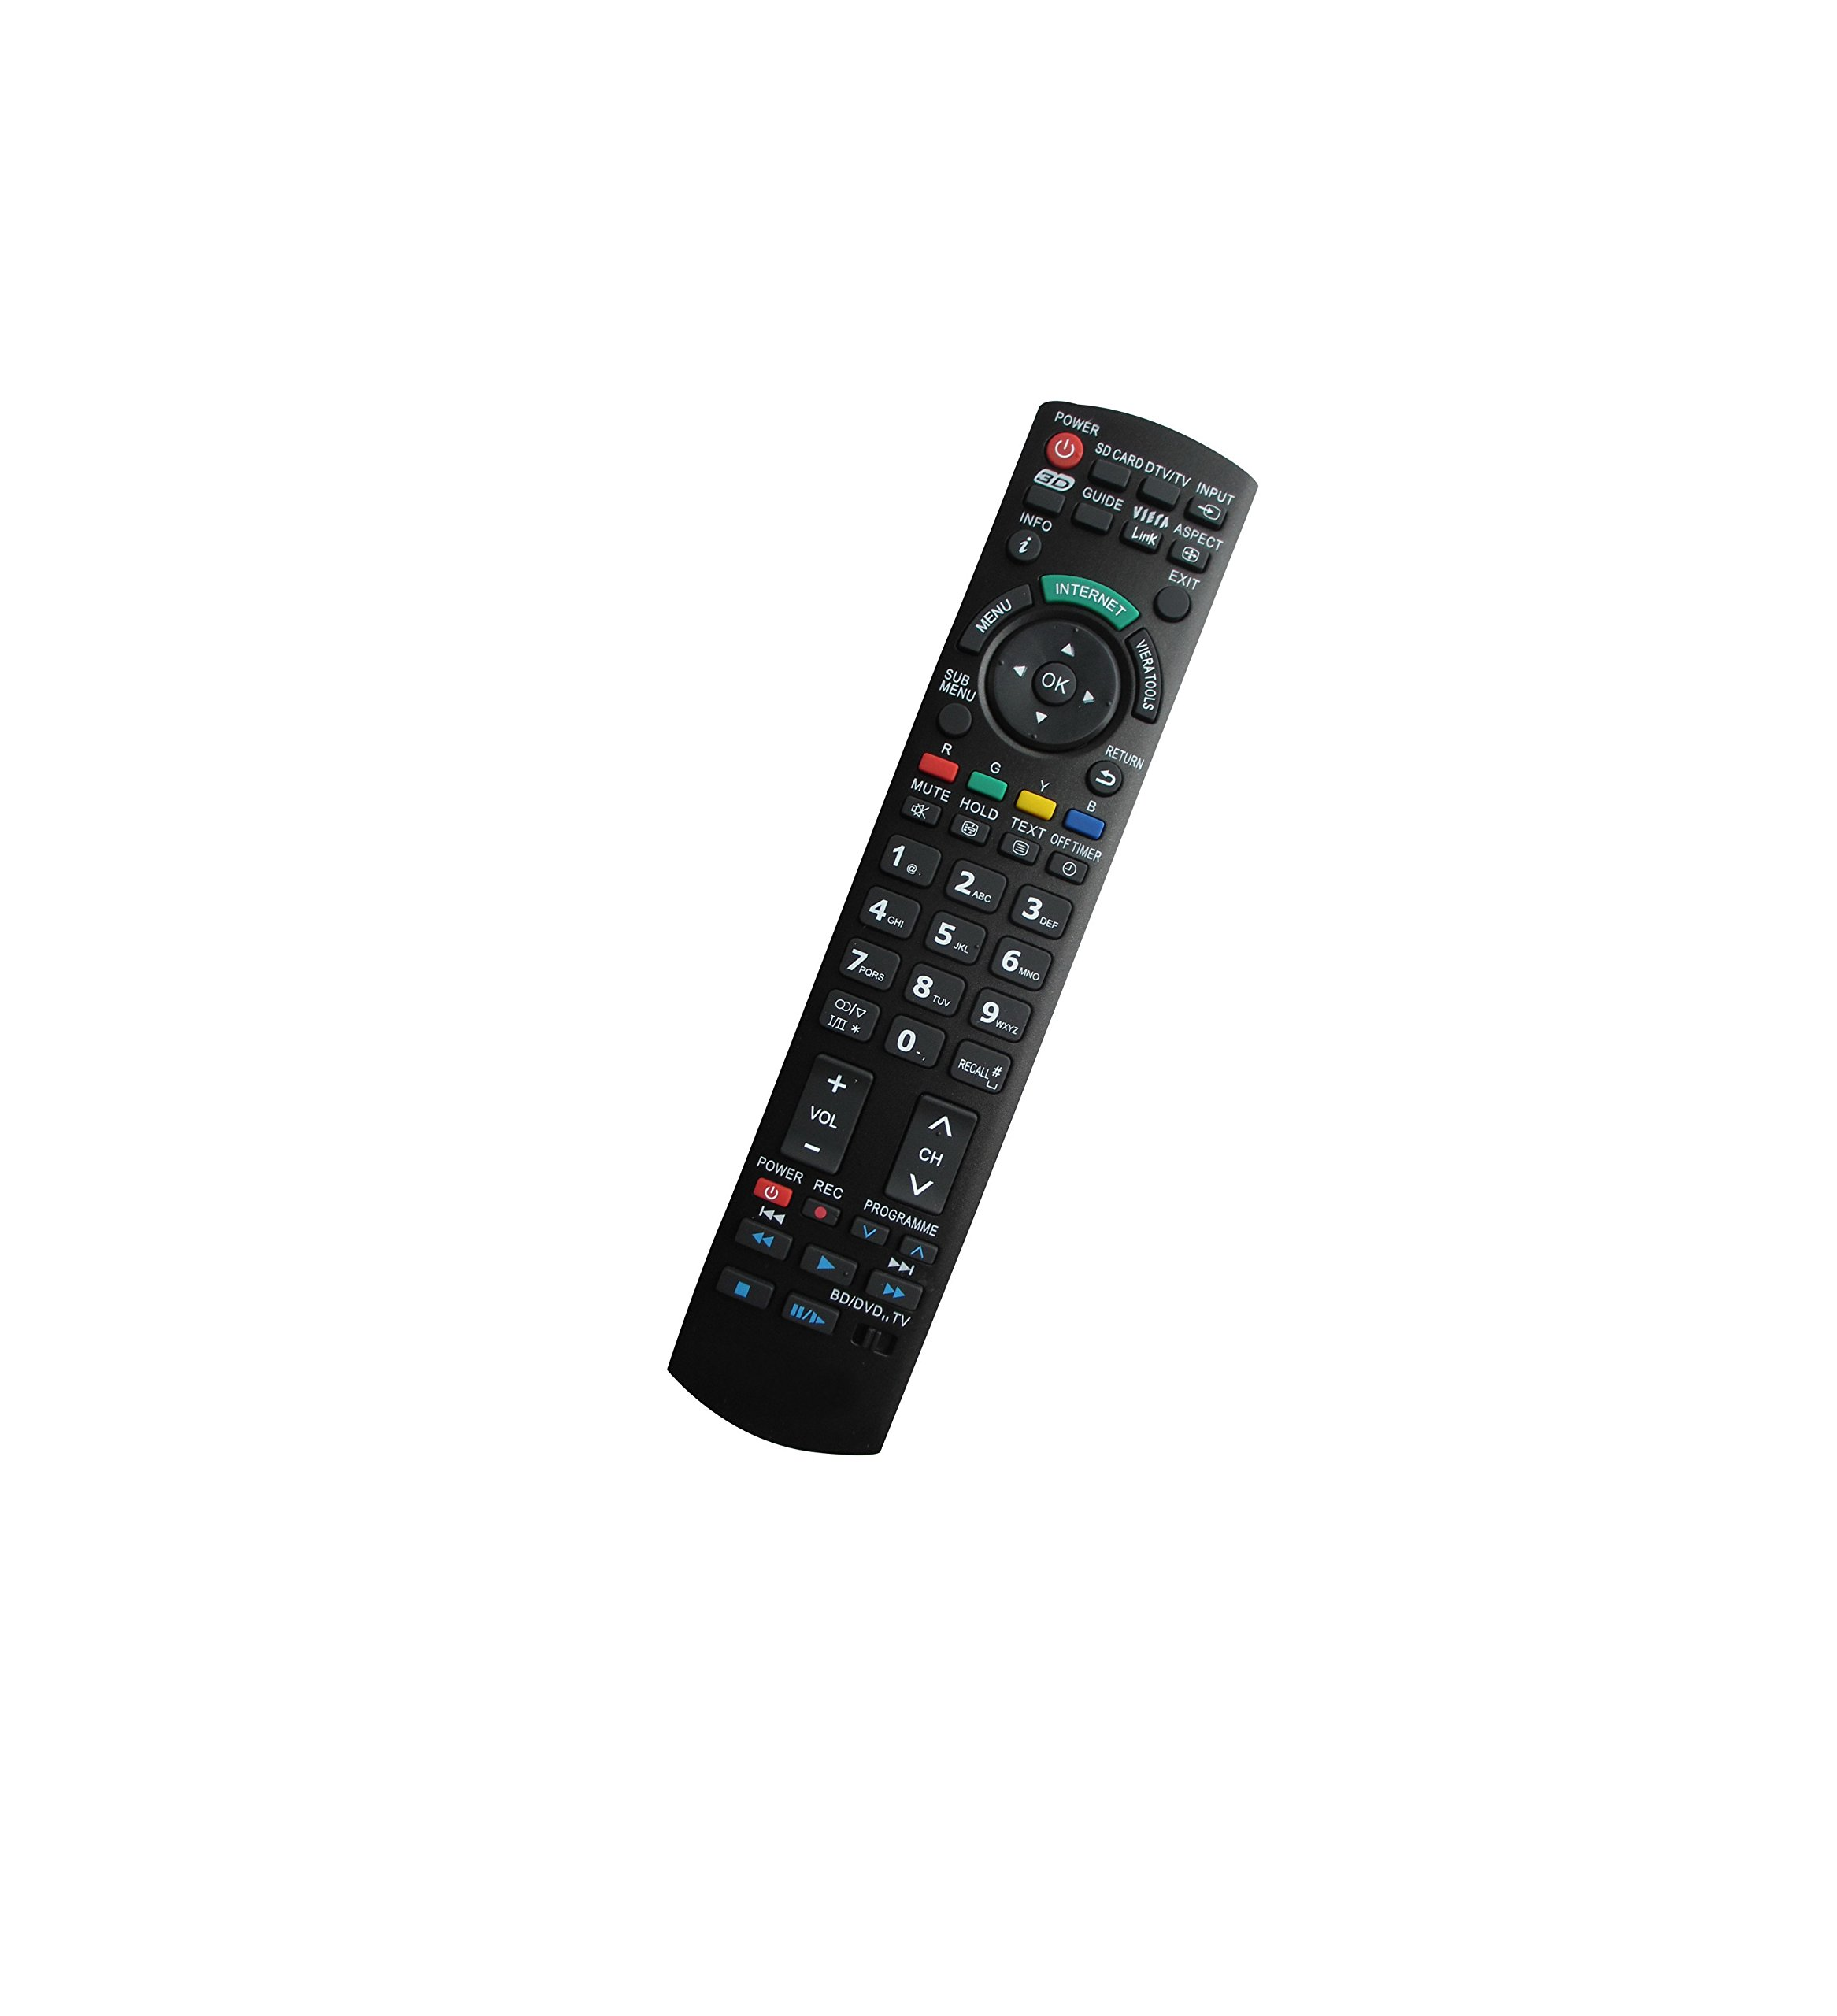 Universal Replacement Remote Control Fit For Panasonic PT-47WX42 PT-47WX42CF PT-61HX41E PT-56HX41 TC-L32C3 Plasma Viera LCD LED HDTV TV by HCDZ